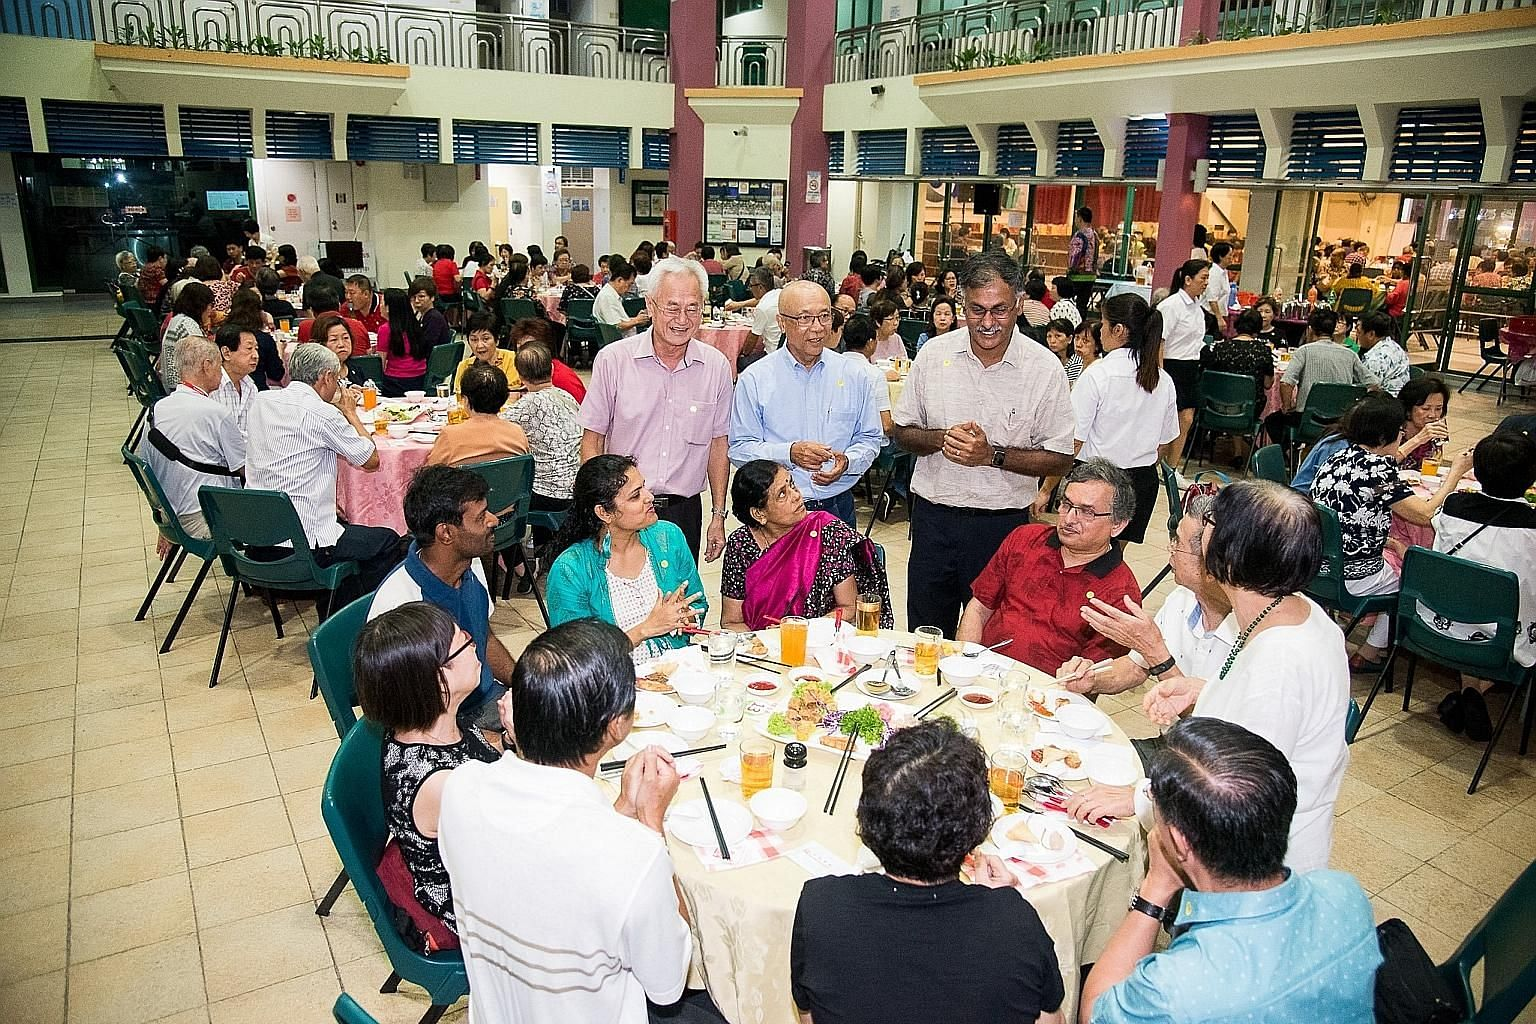 Mr Murali Pillai with guests at the dinner on March 7. He said precautions taken included mandatory temperature checks and advising those who were unwell to see a doctor and stay home. PHOTO: BUKIT BATOK, OUR HOME/FACEBOOK